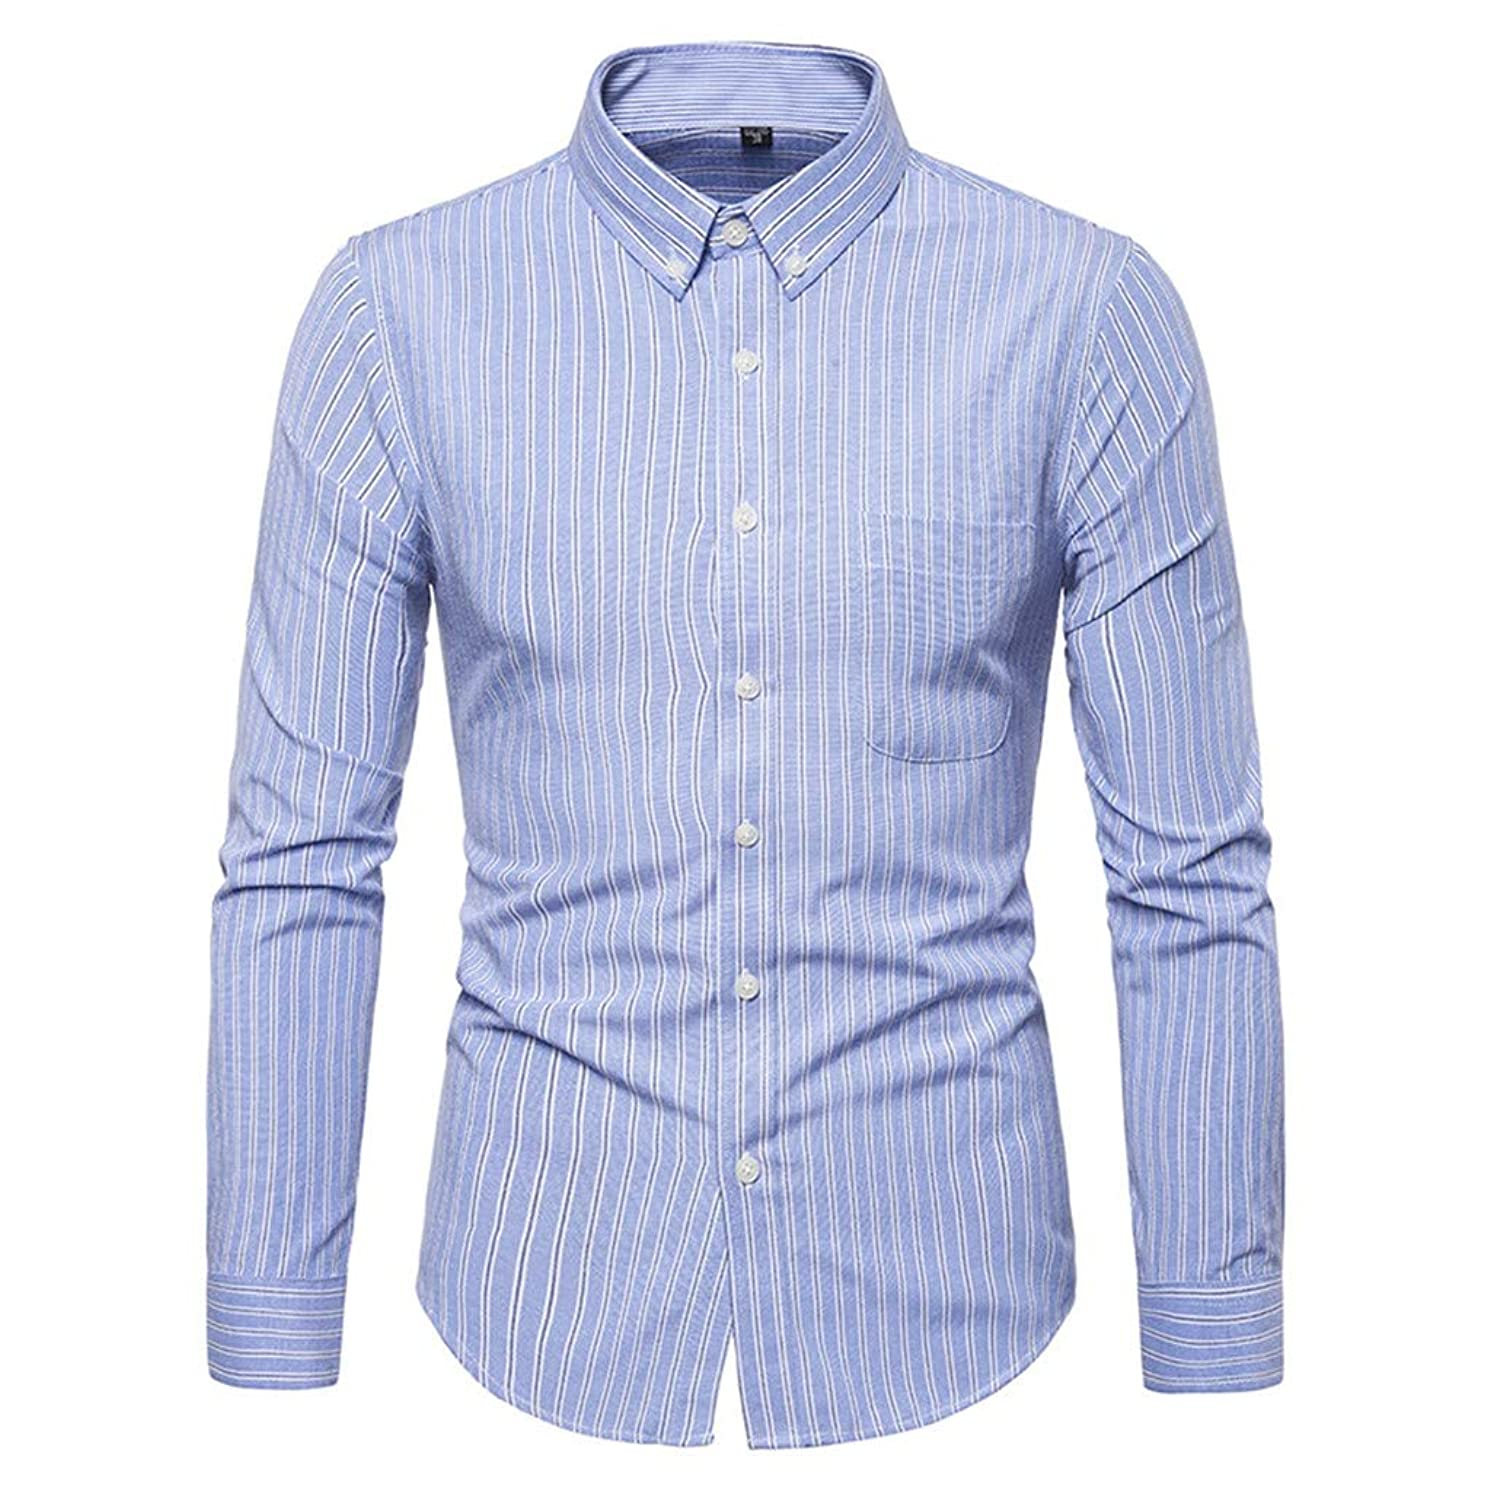 JJLIKER Mens Striped Dress Shirts Slim Fit Long Sleeve Button Down Shirts Wrinkle Free Casual Pocket Shirts for Adult